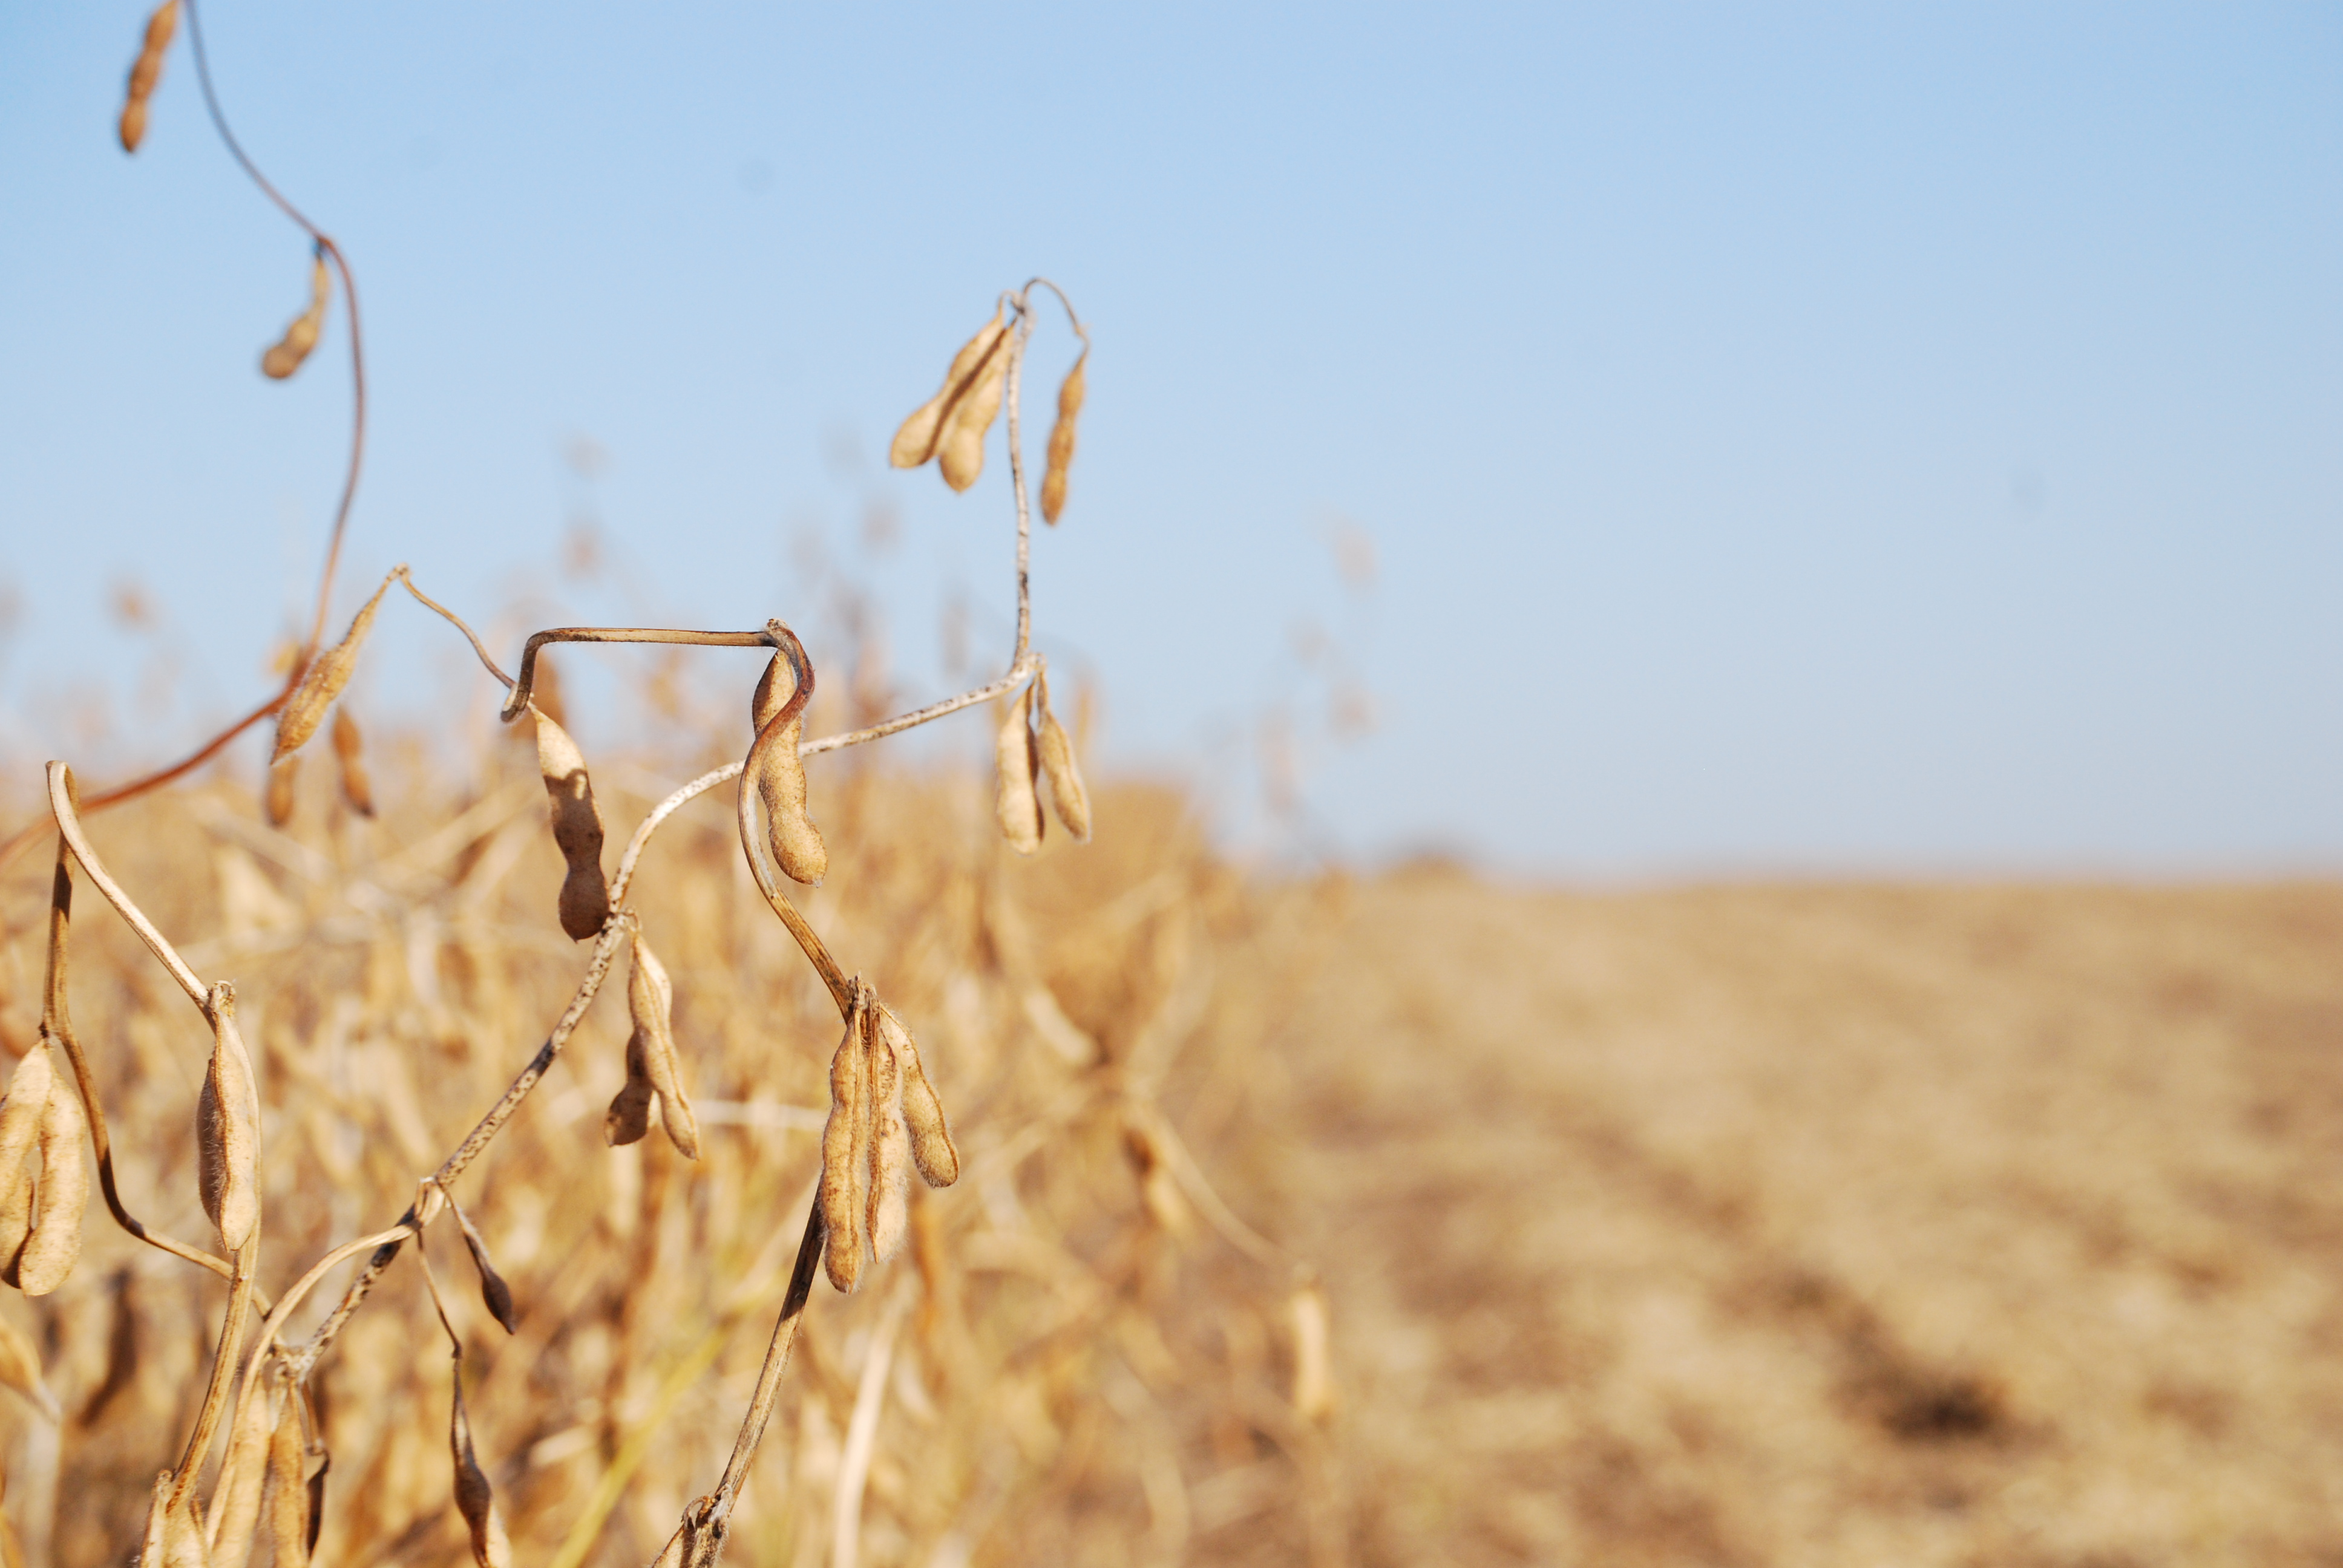 This agronomic image shows soybeans ready for harvest.